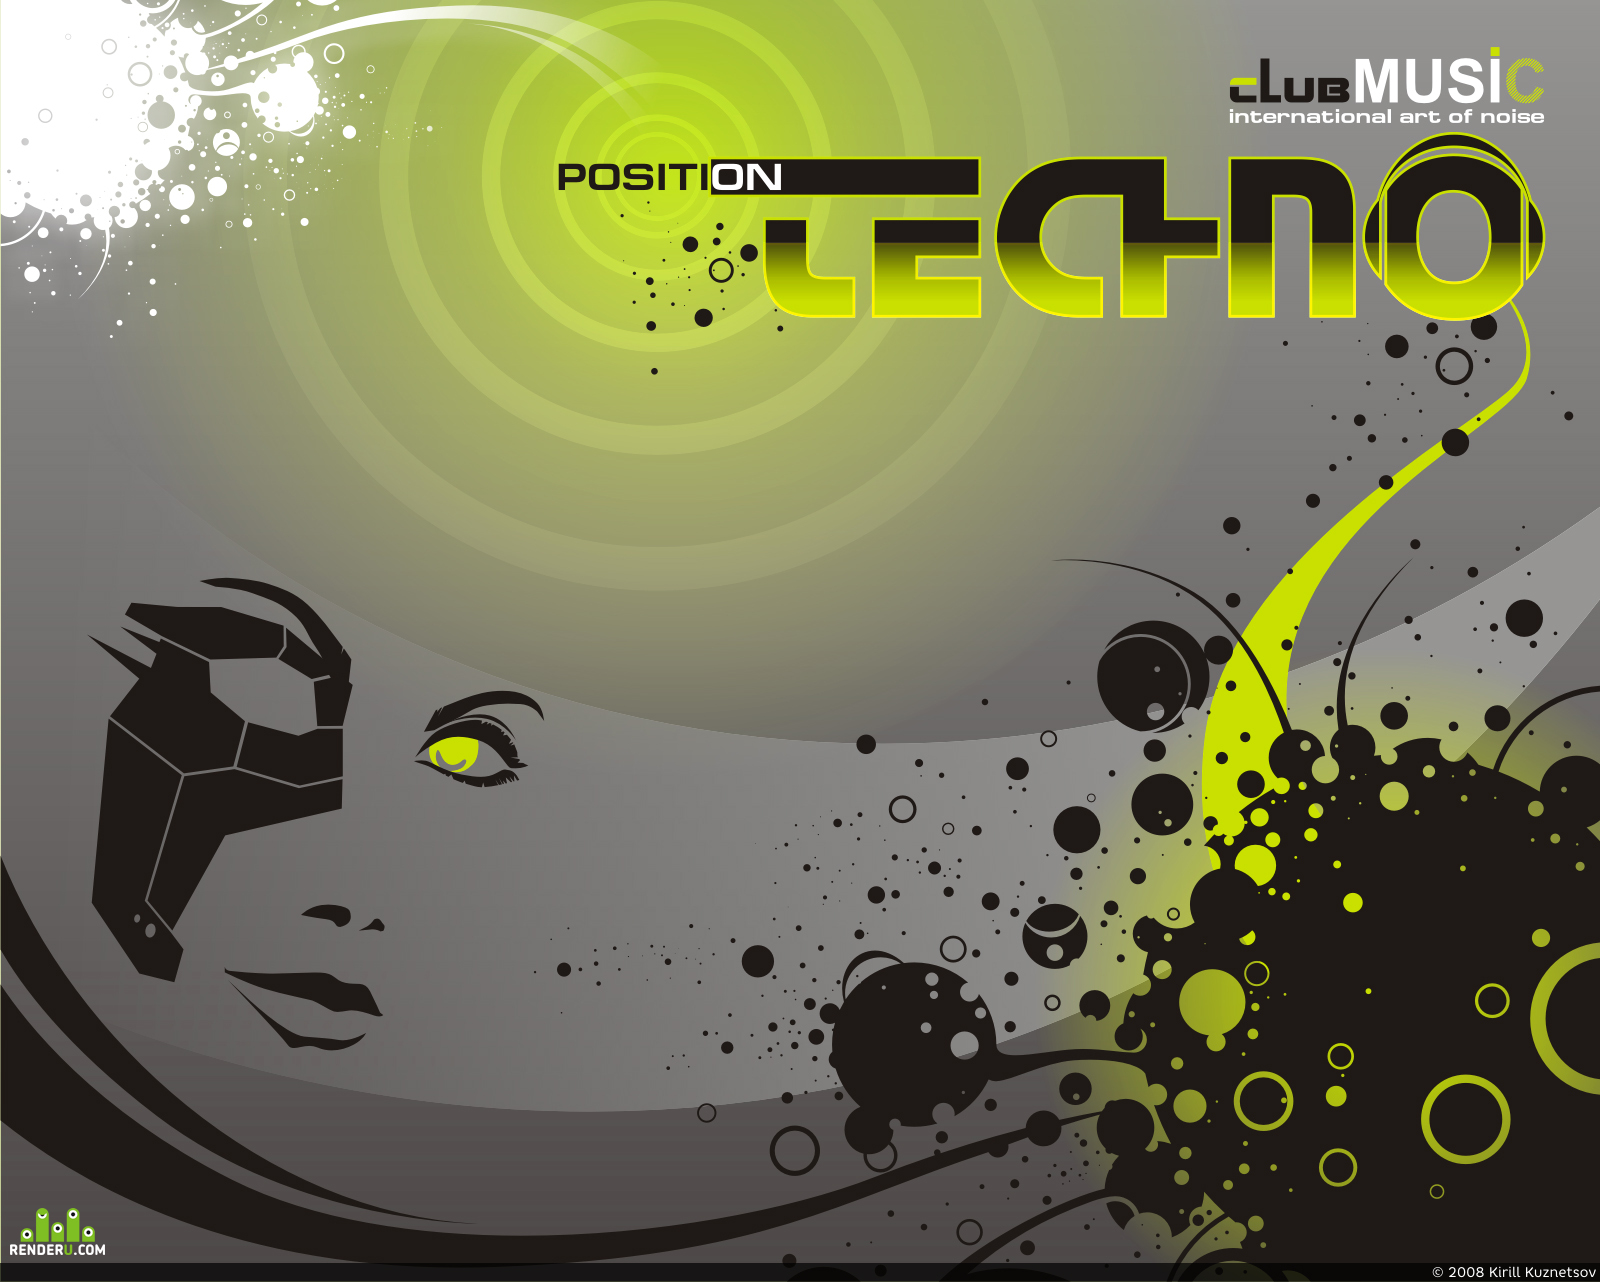 preview clubMUSIC (position TECHNO)